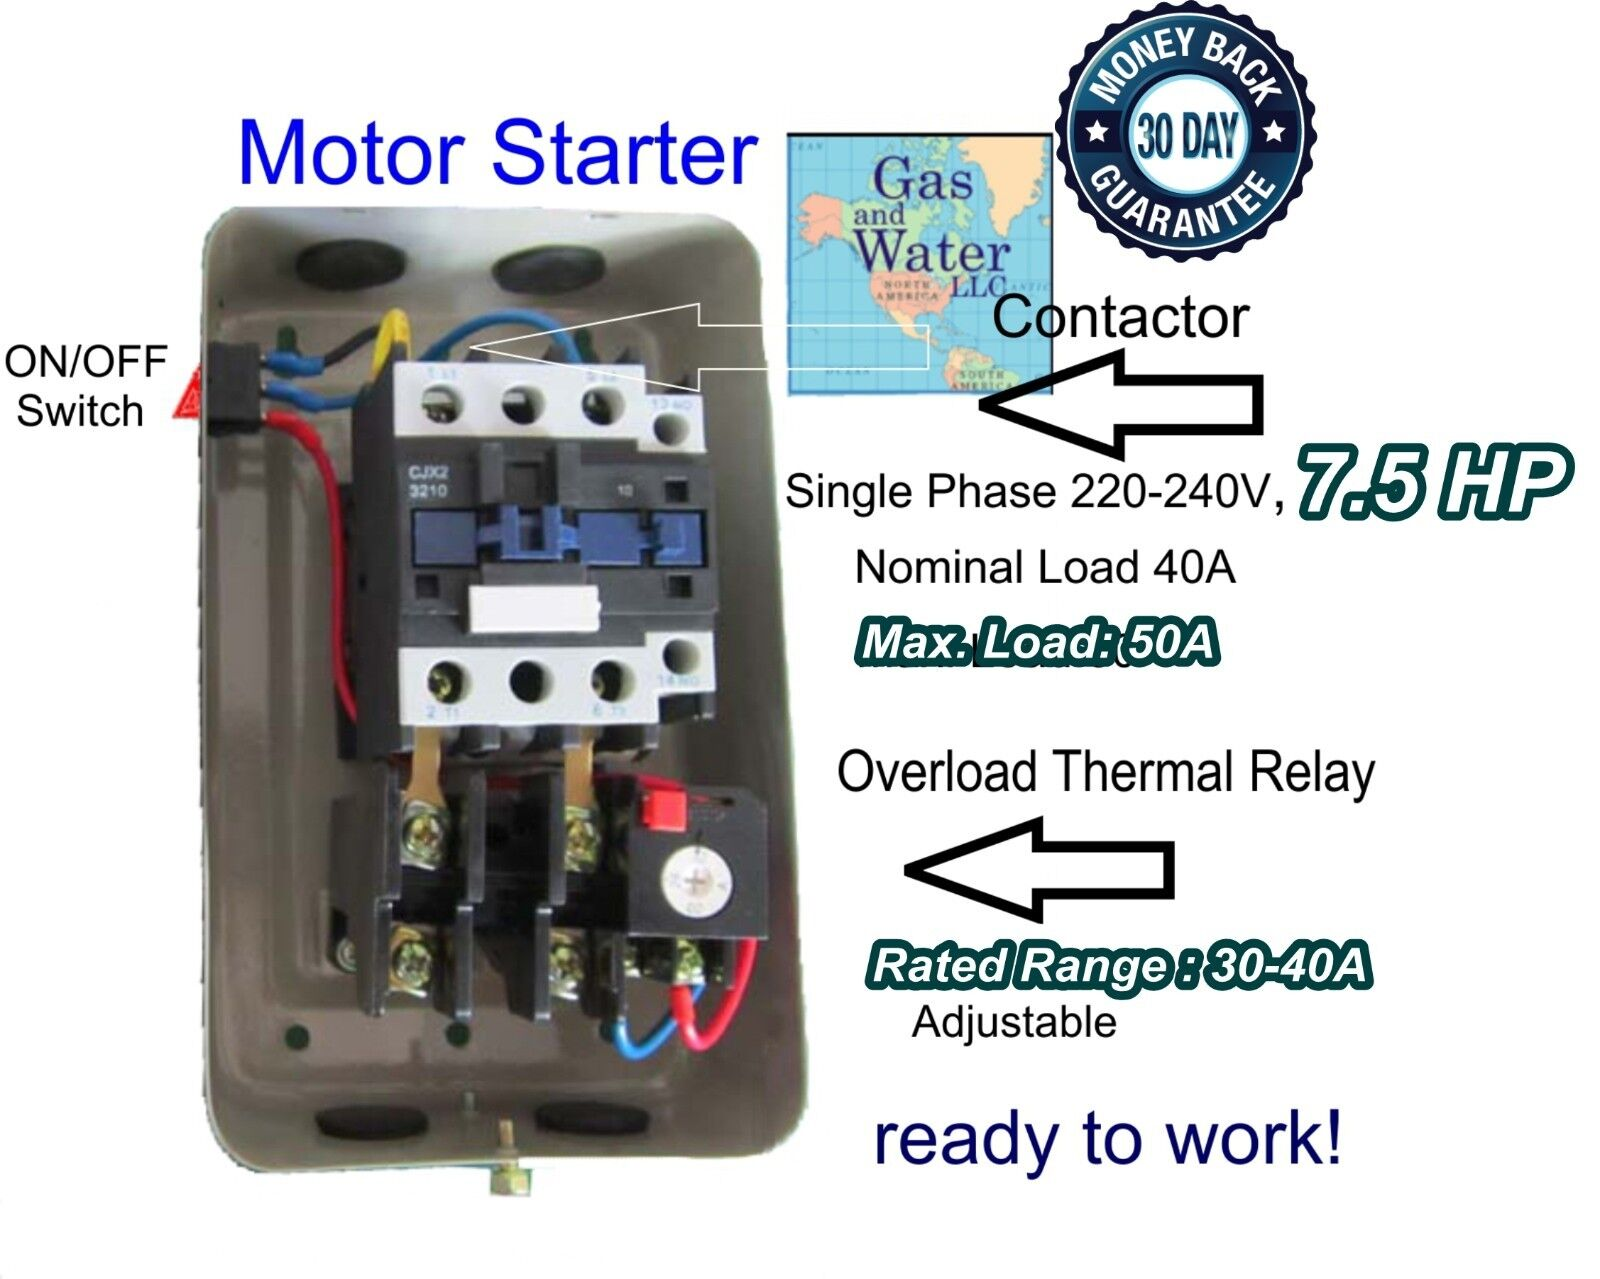 75 Hp Magnetic Starter Motor Control Single Phase 1ph 220 240v 30 Wire Or Four 240 Volt 60 Hz A 208 40a Ebay